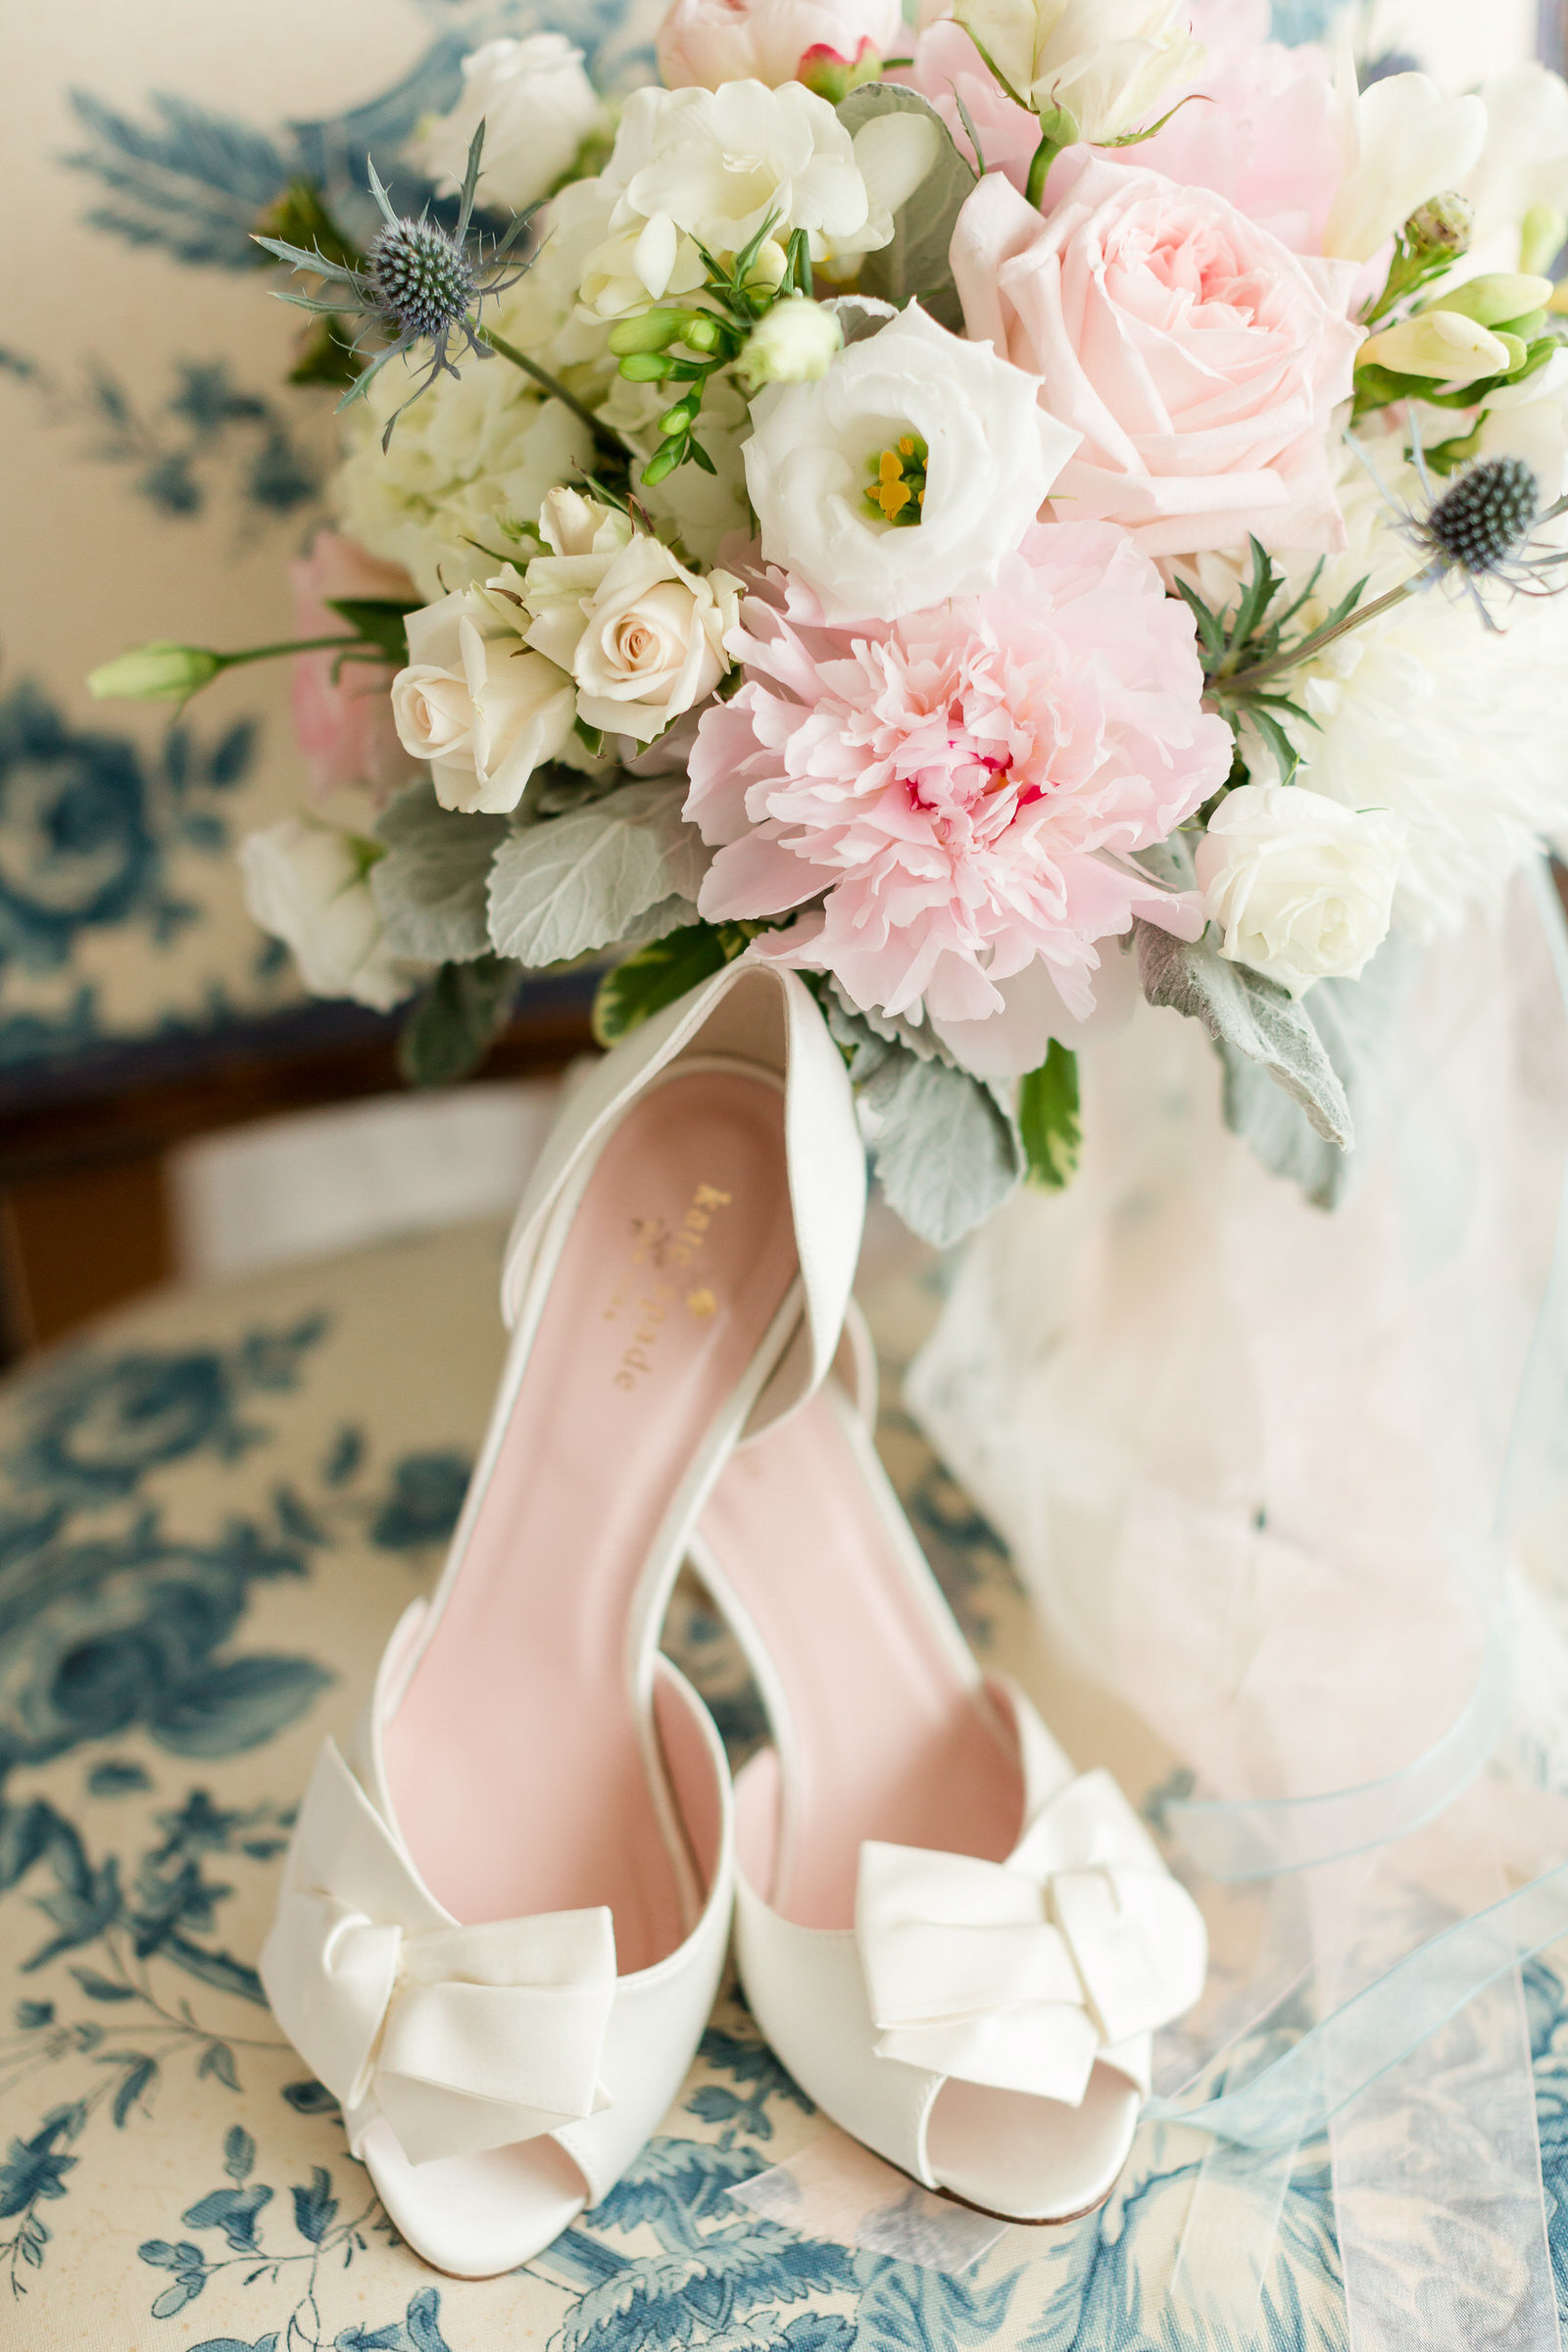 Maison Meredith Photography Wisconsin Wedding Photographer 004